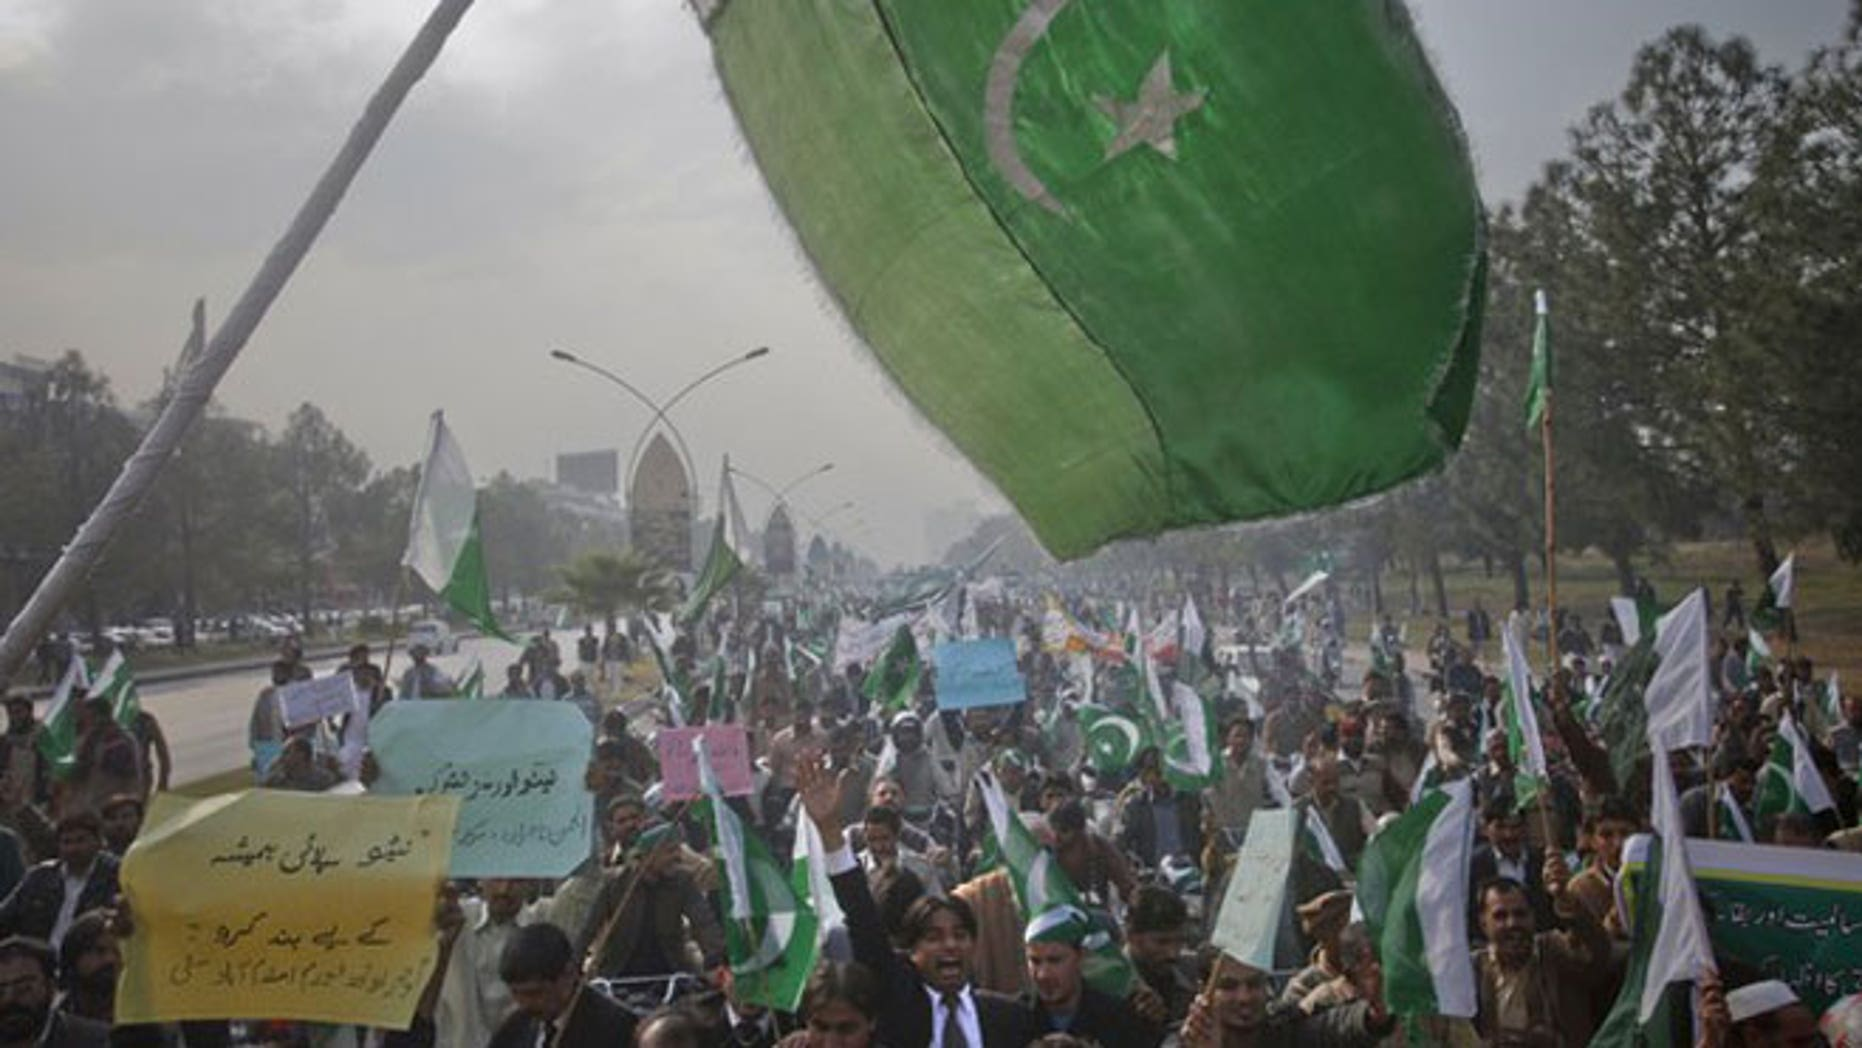 December 8, 2011: The Pakistan flag waves in the foreground as protesters hold placards during a rally in support of Pakistan army in Islamabad.